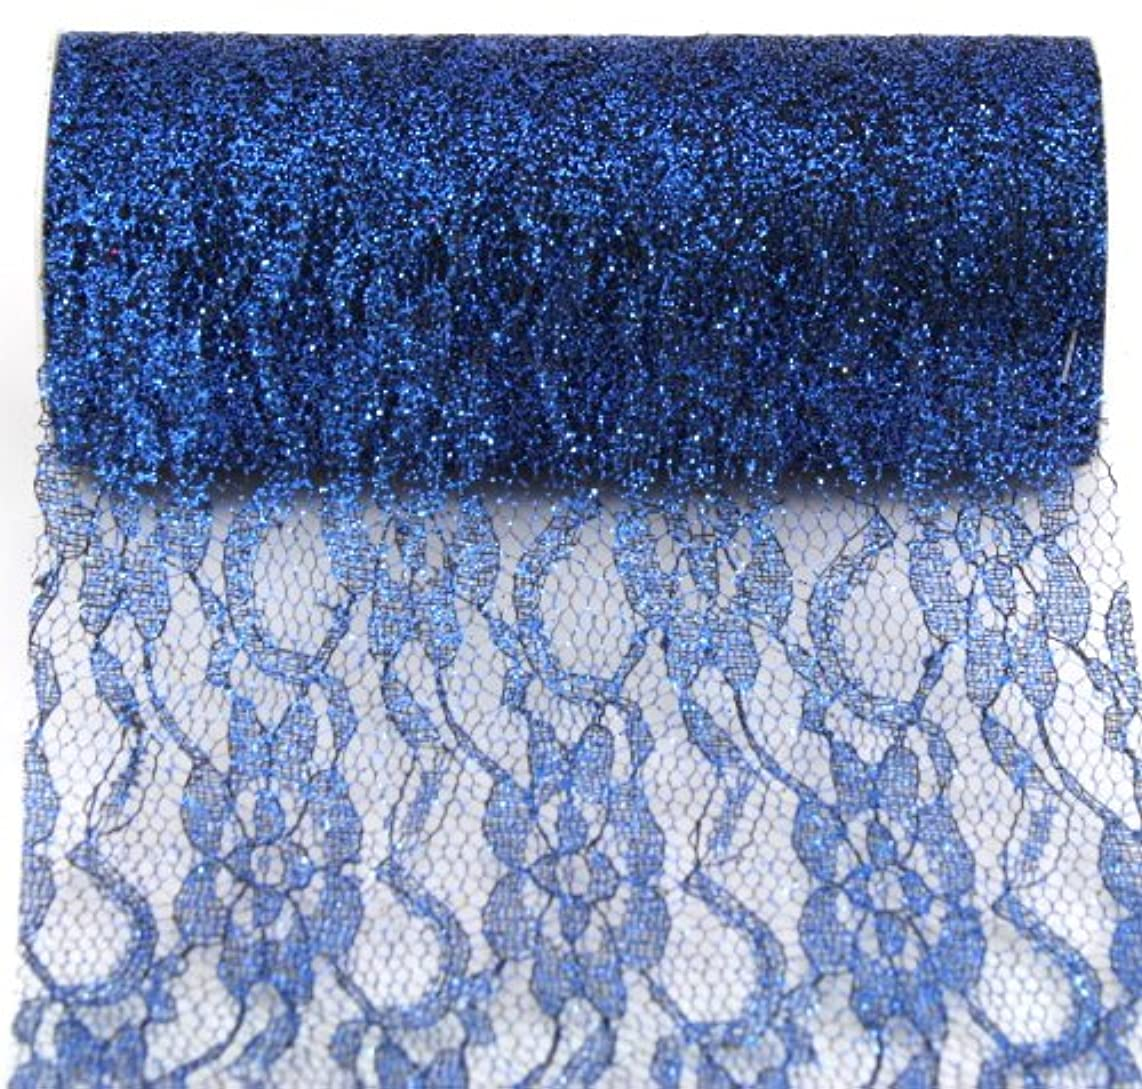 Kel-Toy Sparkle Lace Fabric, 6-Inch by 10-Yard, Navy